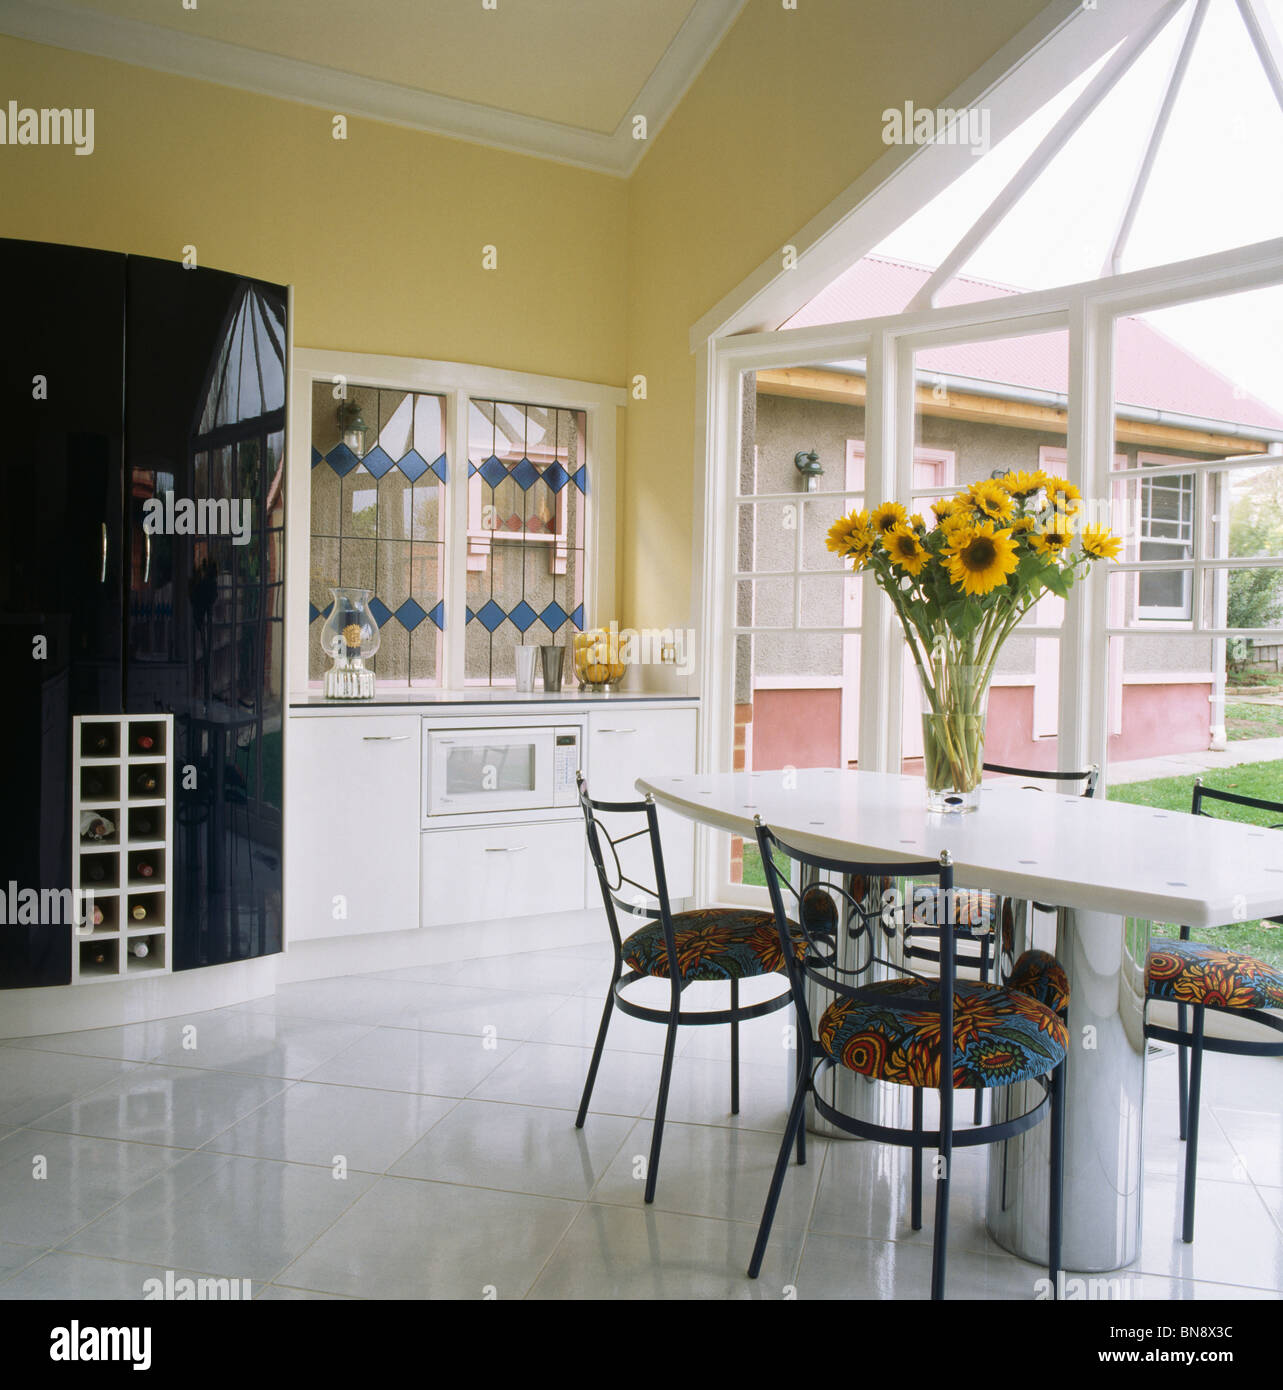 Kitchen Interior With Pink Furniture And Tiles Stock: White Ceramic Floor Tiles In Modern Pale Yellow Kitchen